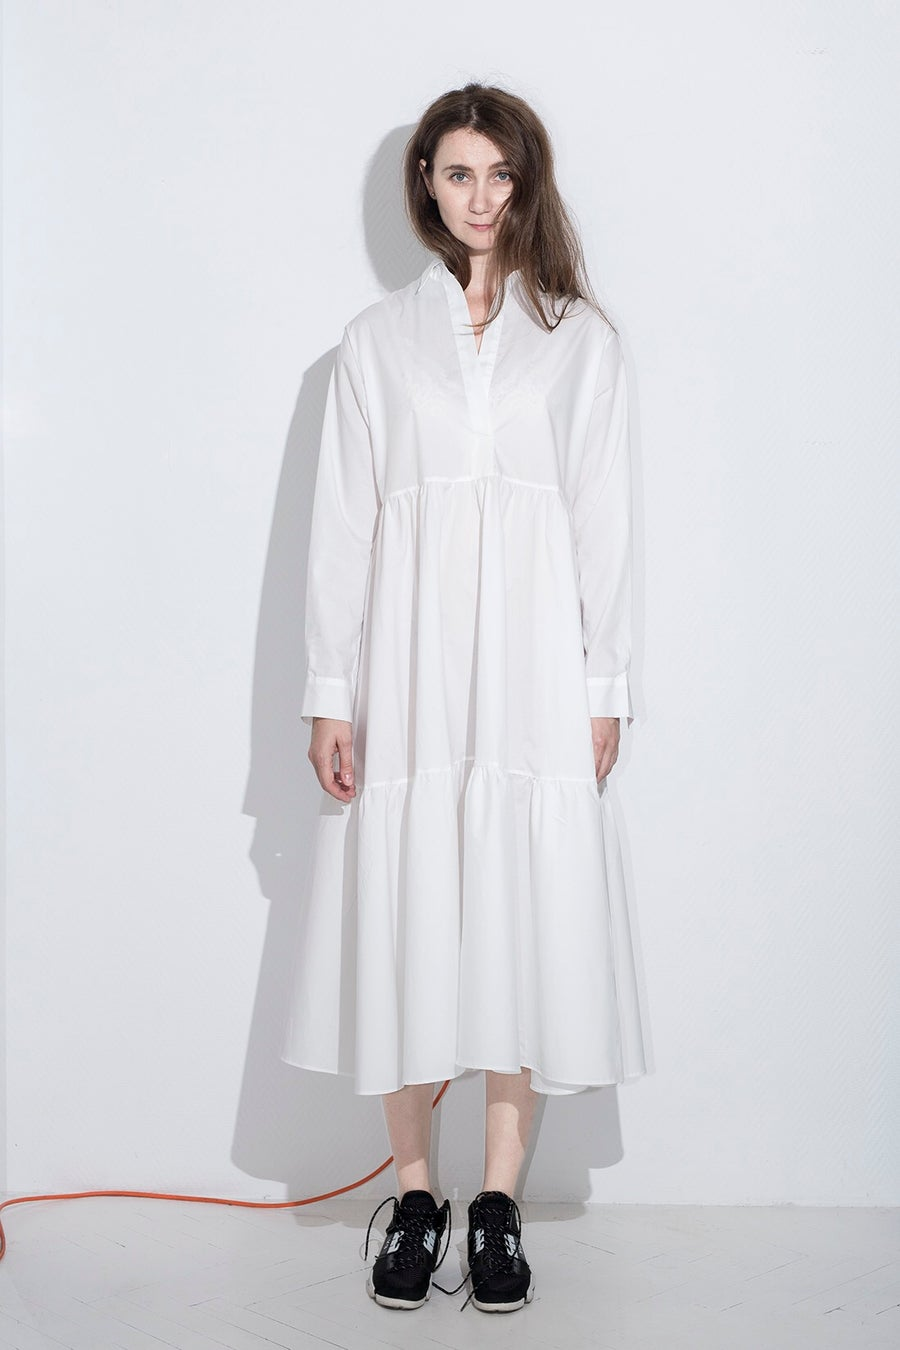 Image of White dress with wavy layers